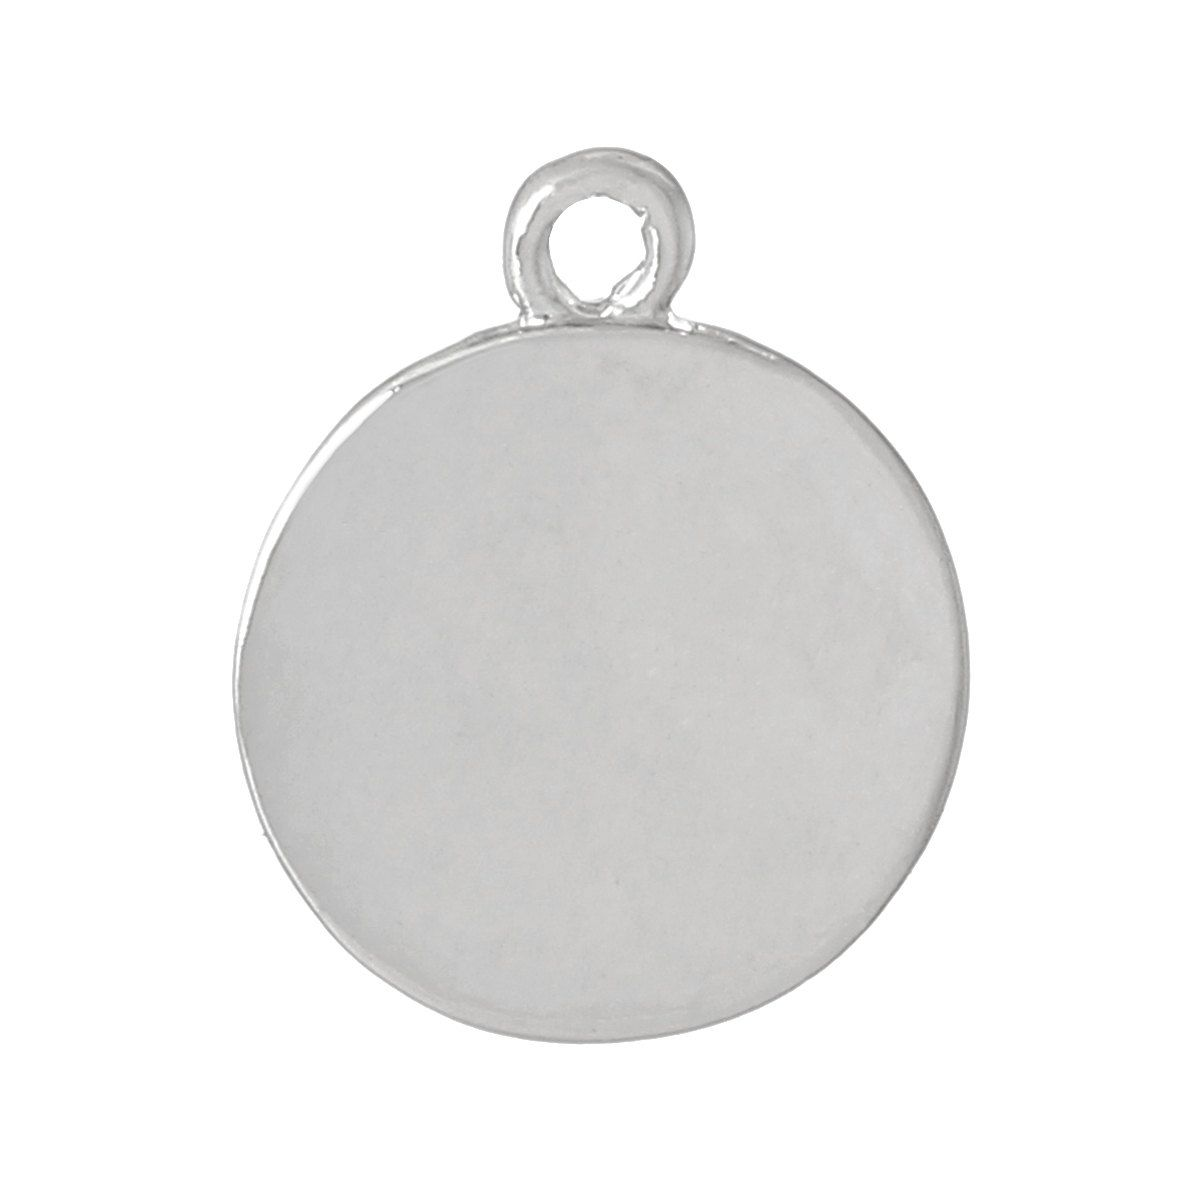 4 Thick Silver Zinc Metal Circle Disc Stamping Blanks Charms Pendants 11 2 Quot 14 Gauge Msb0220 Stamping Blanks Metal Stamping Blanks Metal Stamping Craft